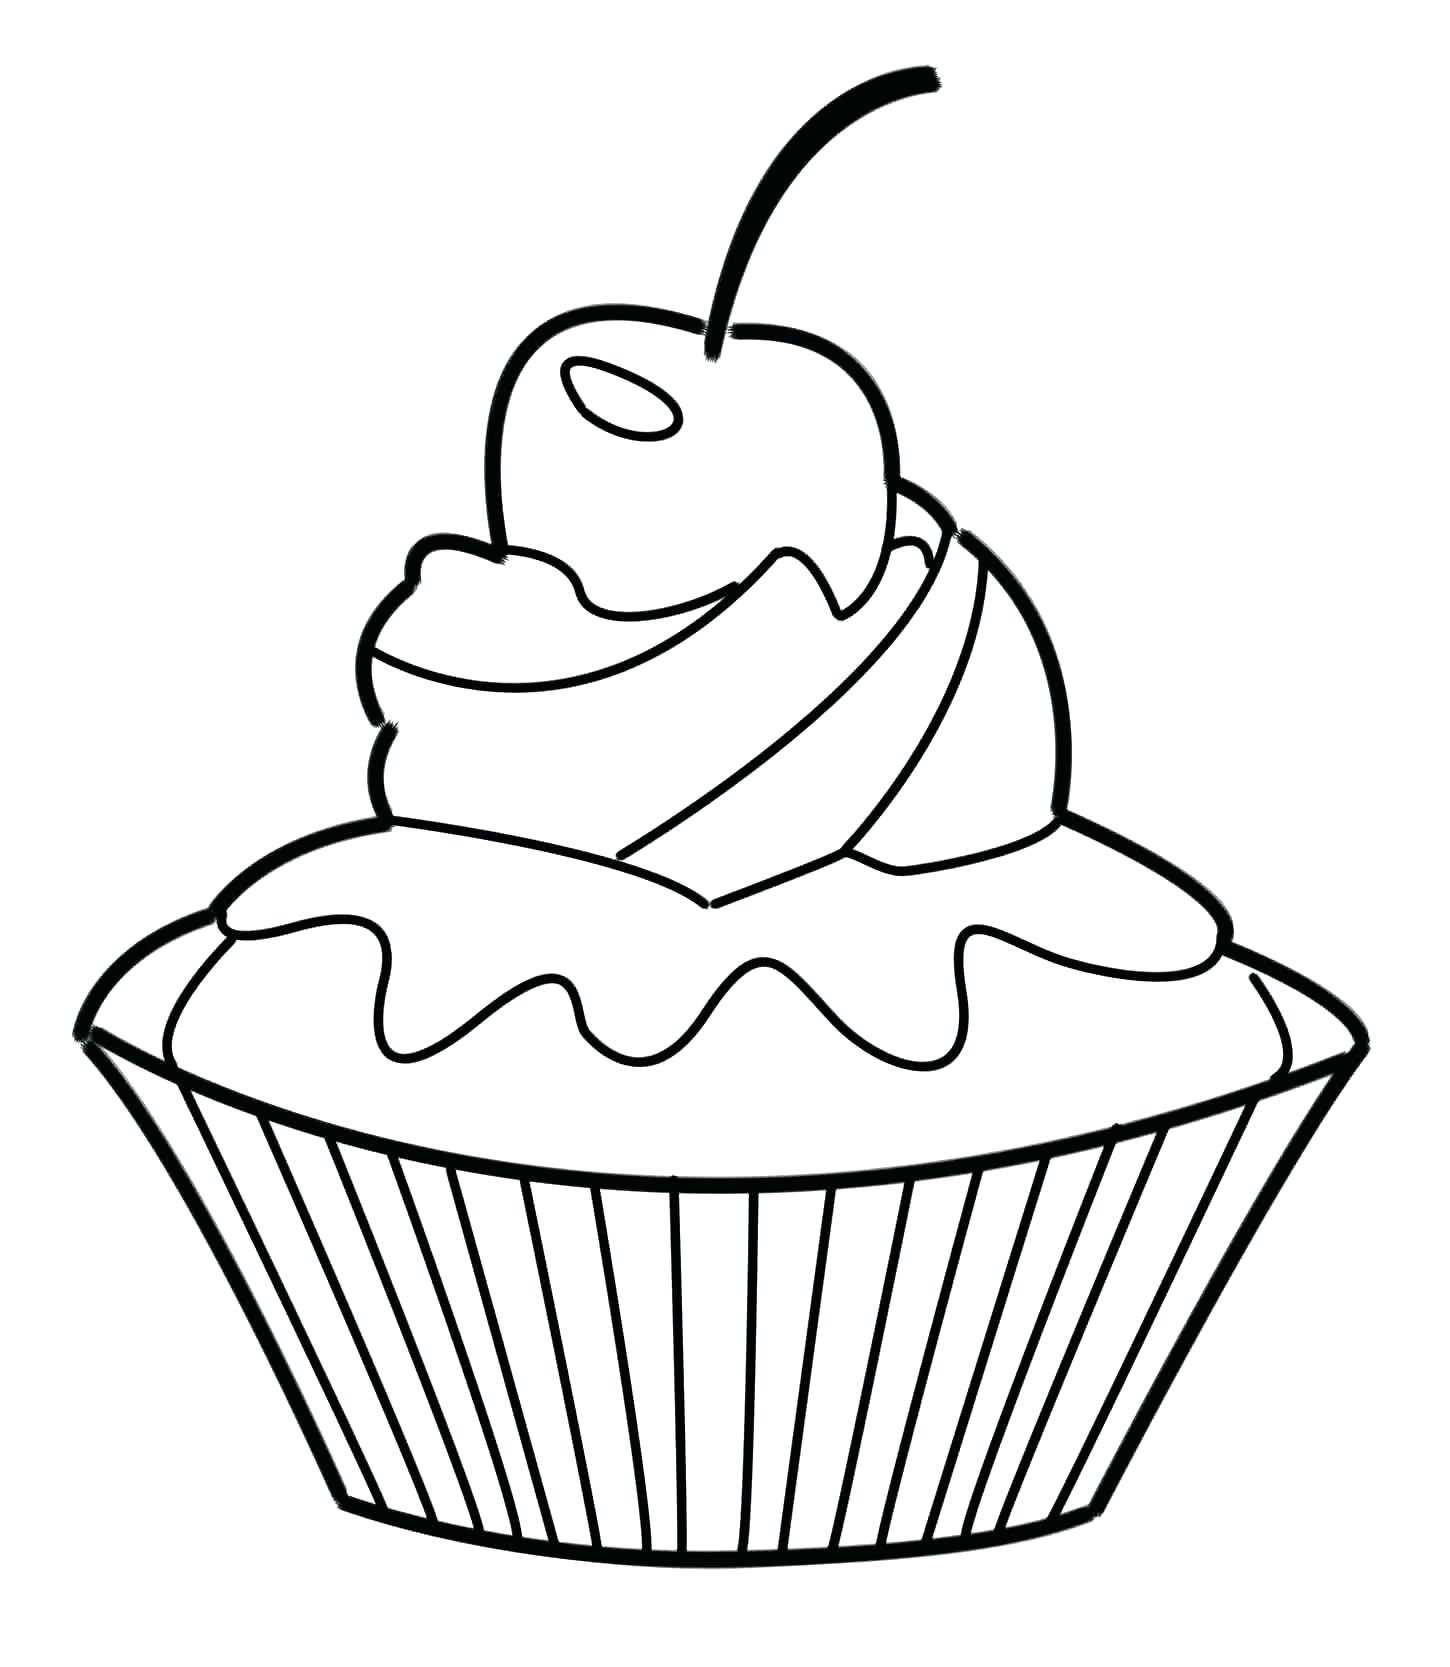 1450x1667 coloring Cute Cupcakes Coloring Pages